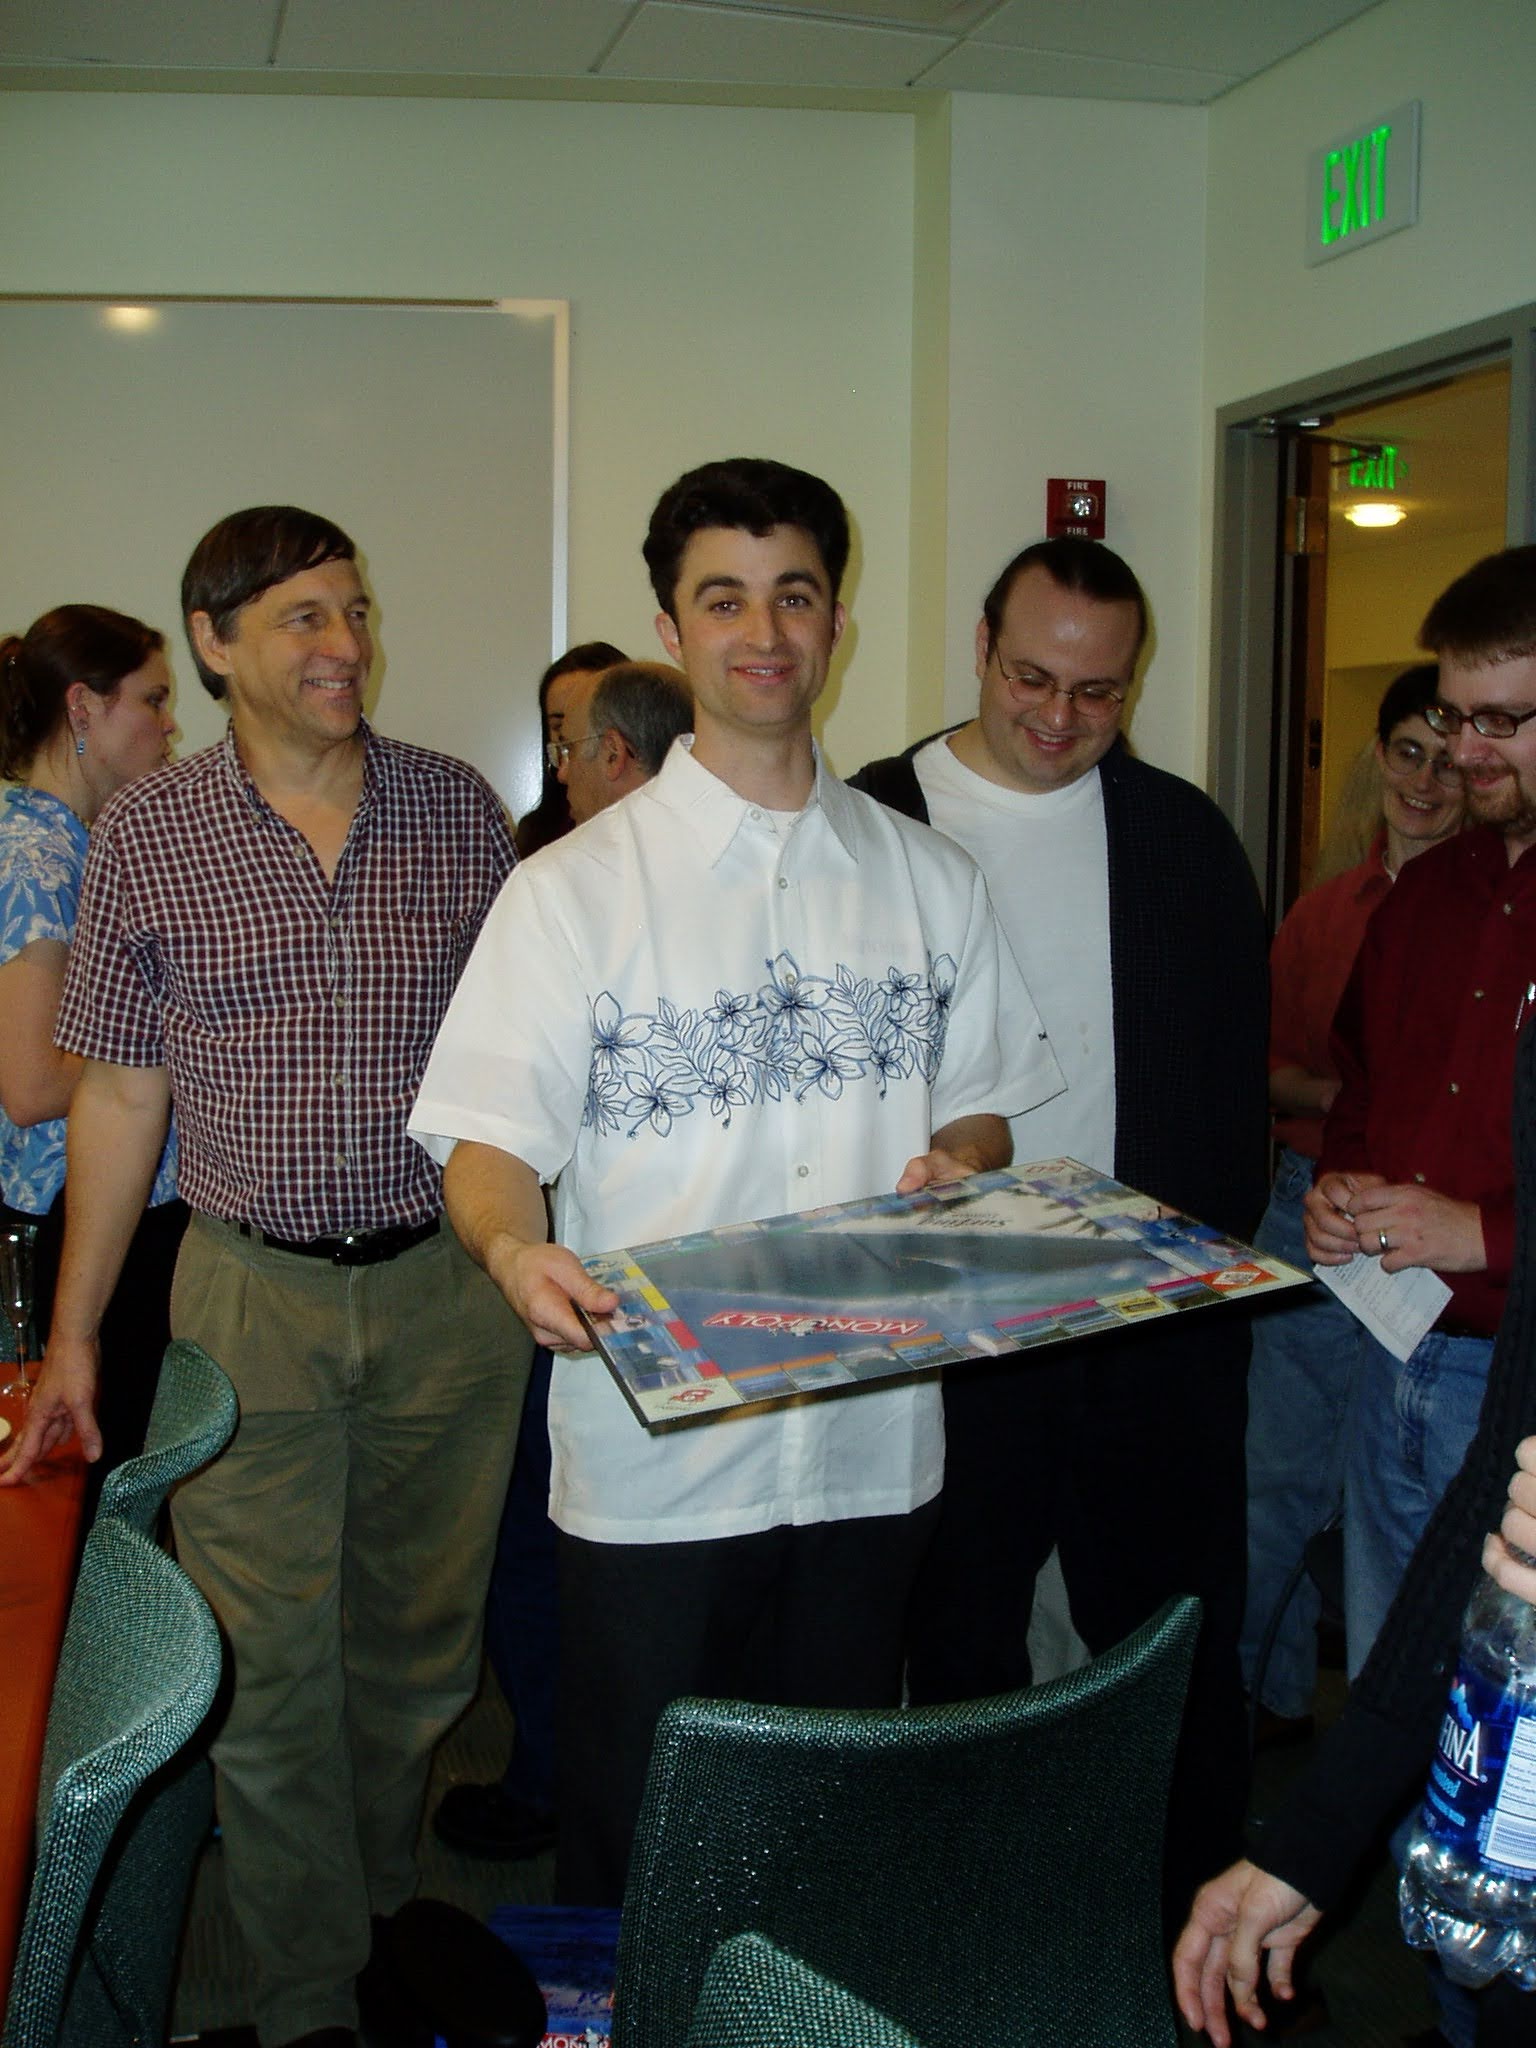 Associate Director of the Genome Browser Robert Kuhn and Chuck Sugnet at Chuck's dissertation defense in 2005